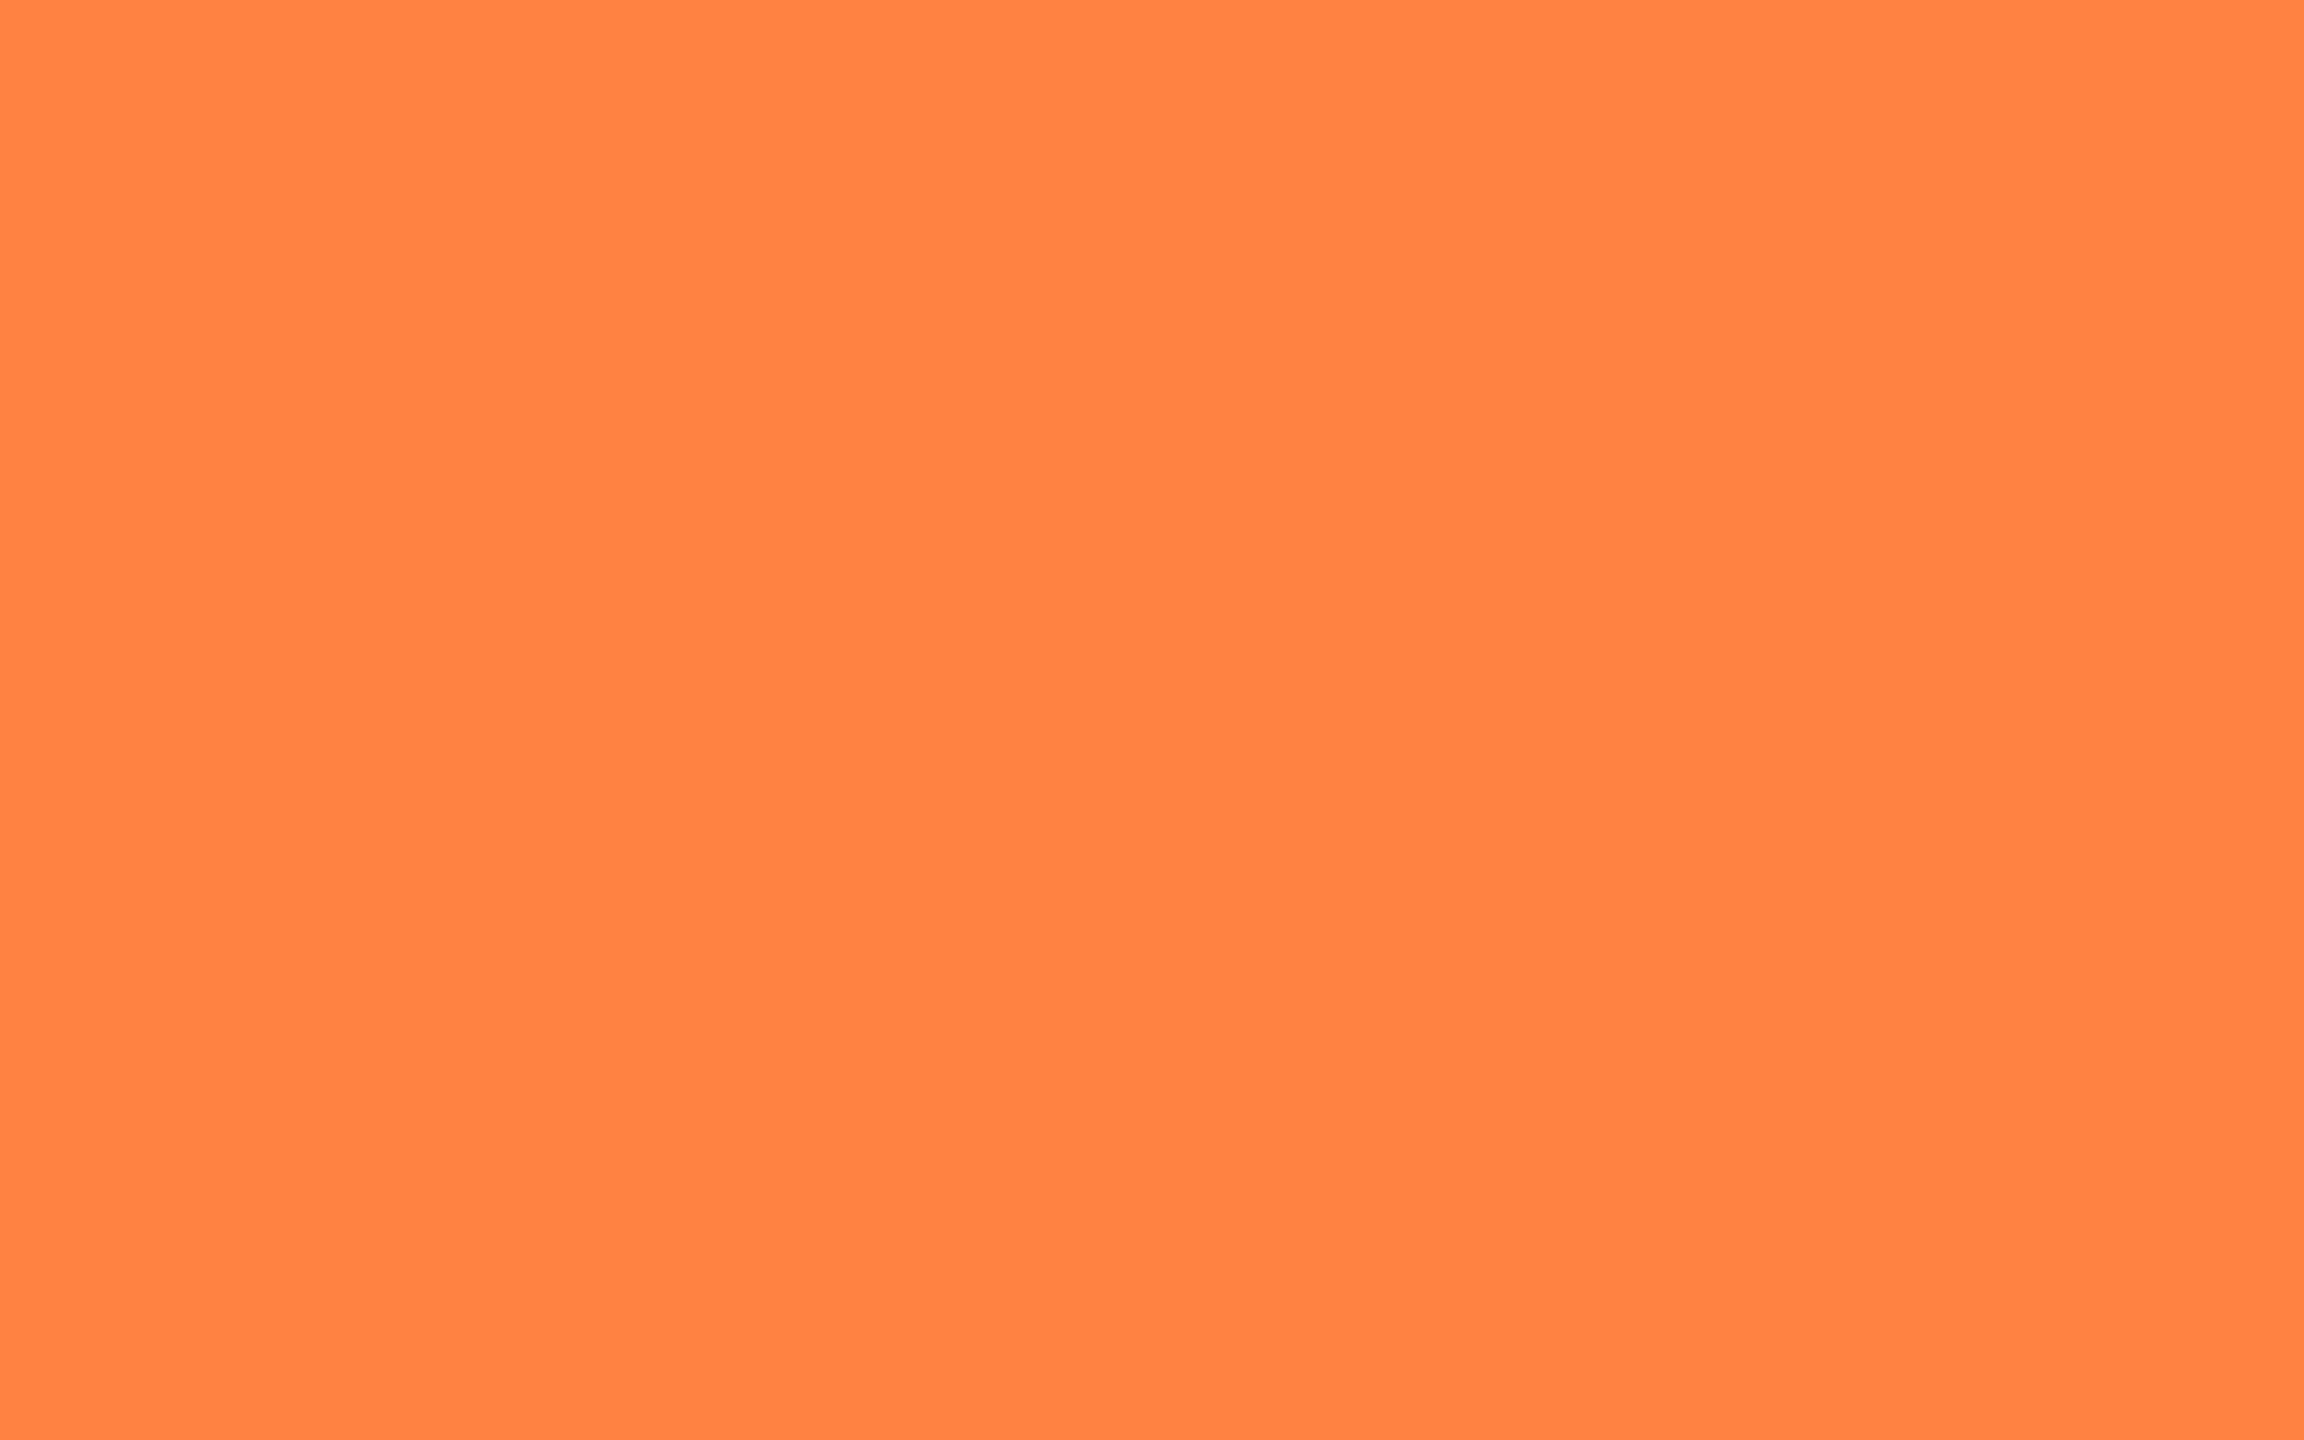 2304x1440 Mango Tango Solid Color Background